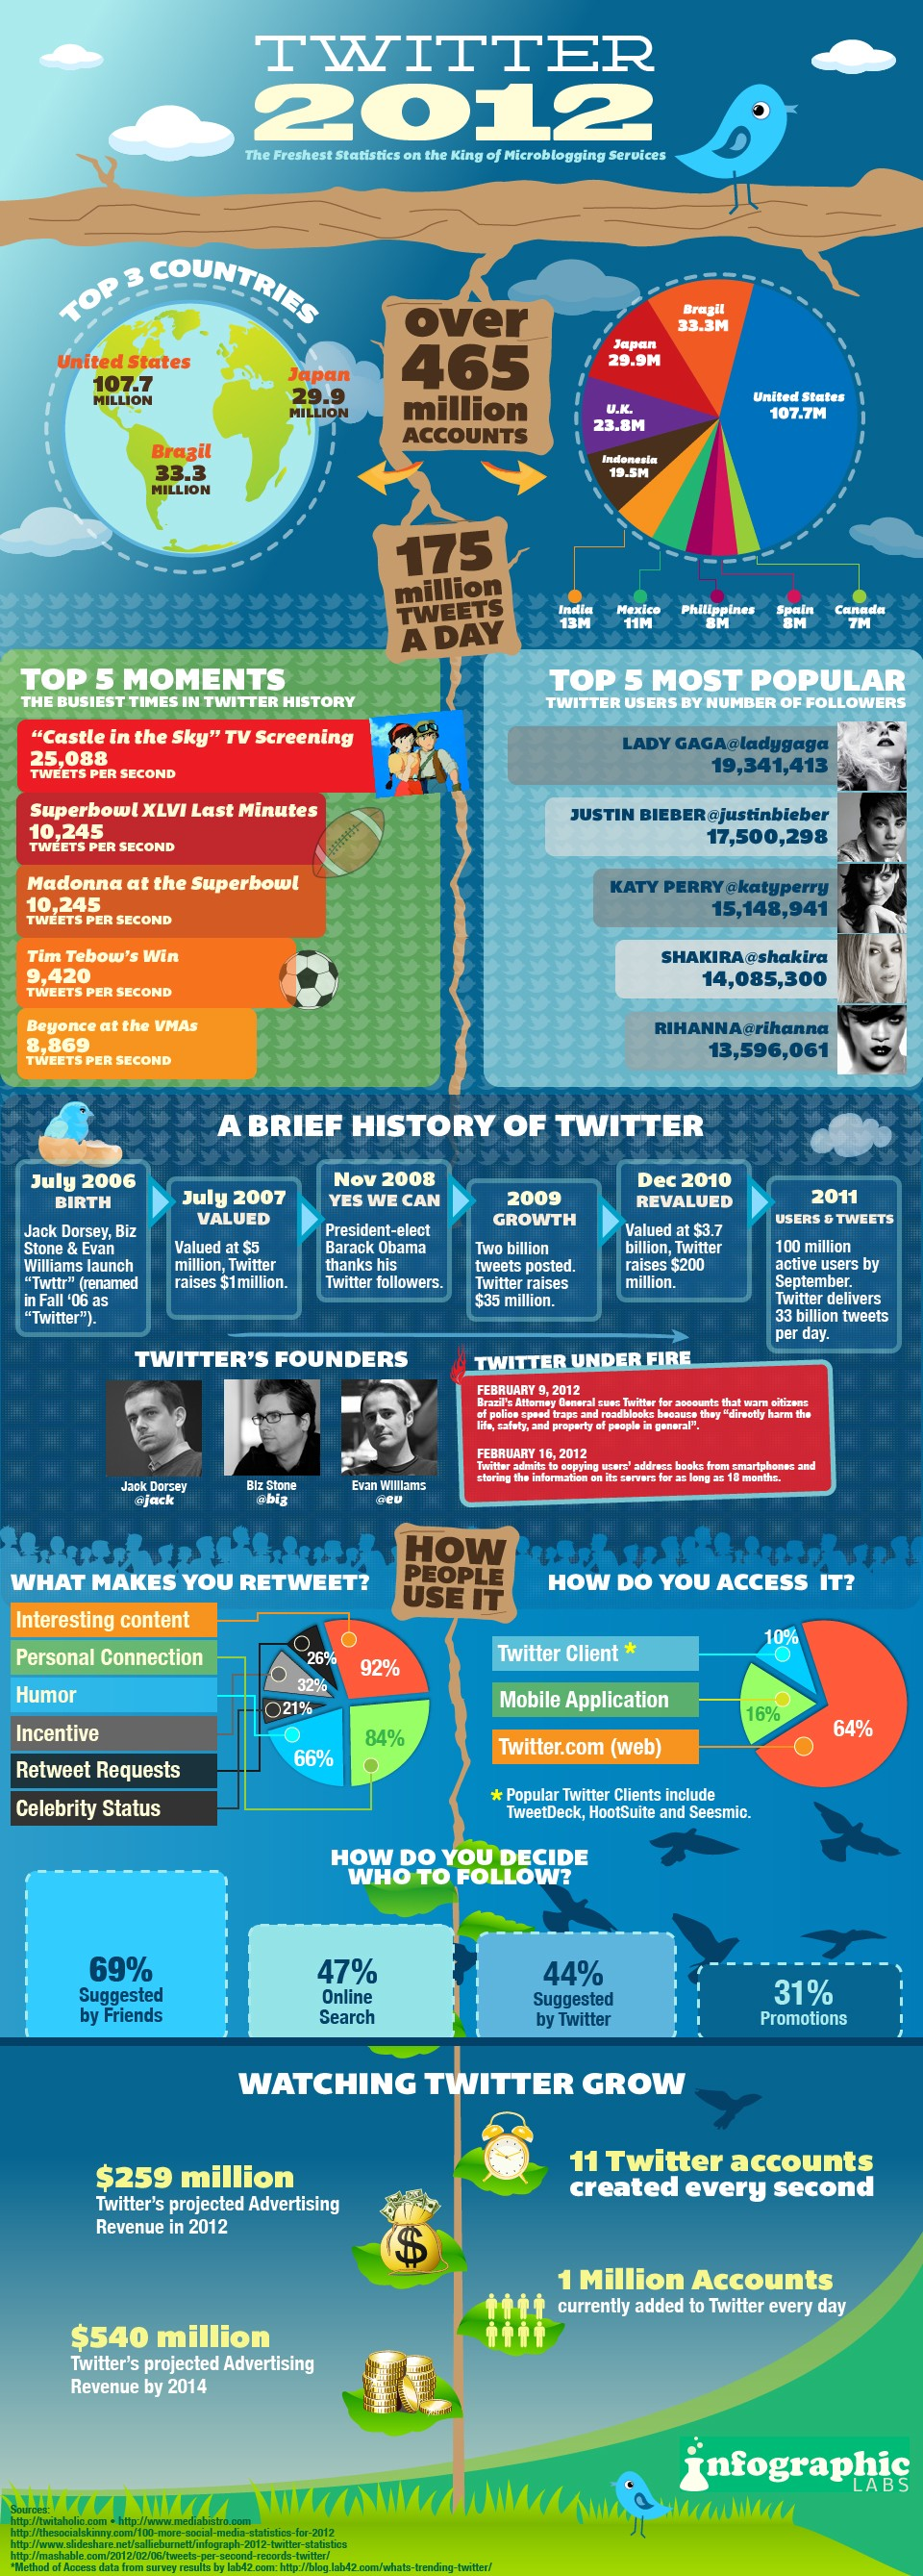 Just How Big Is Twitter In 2012?